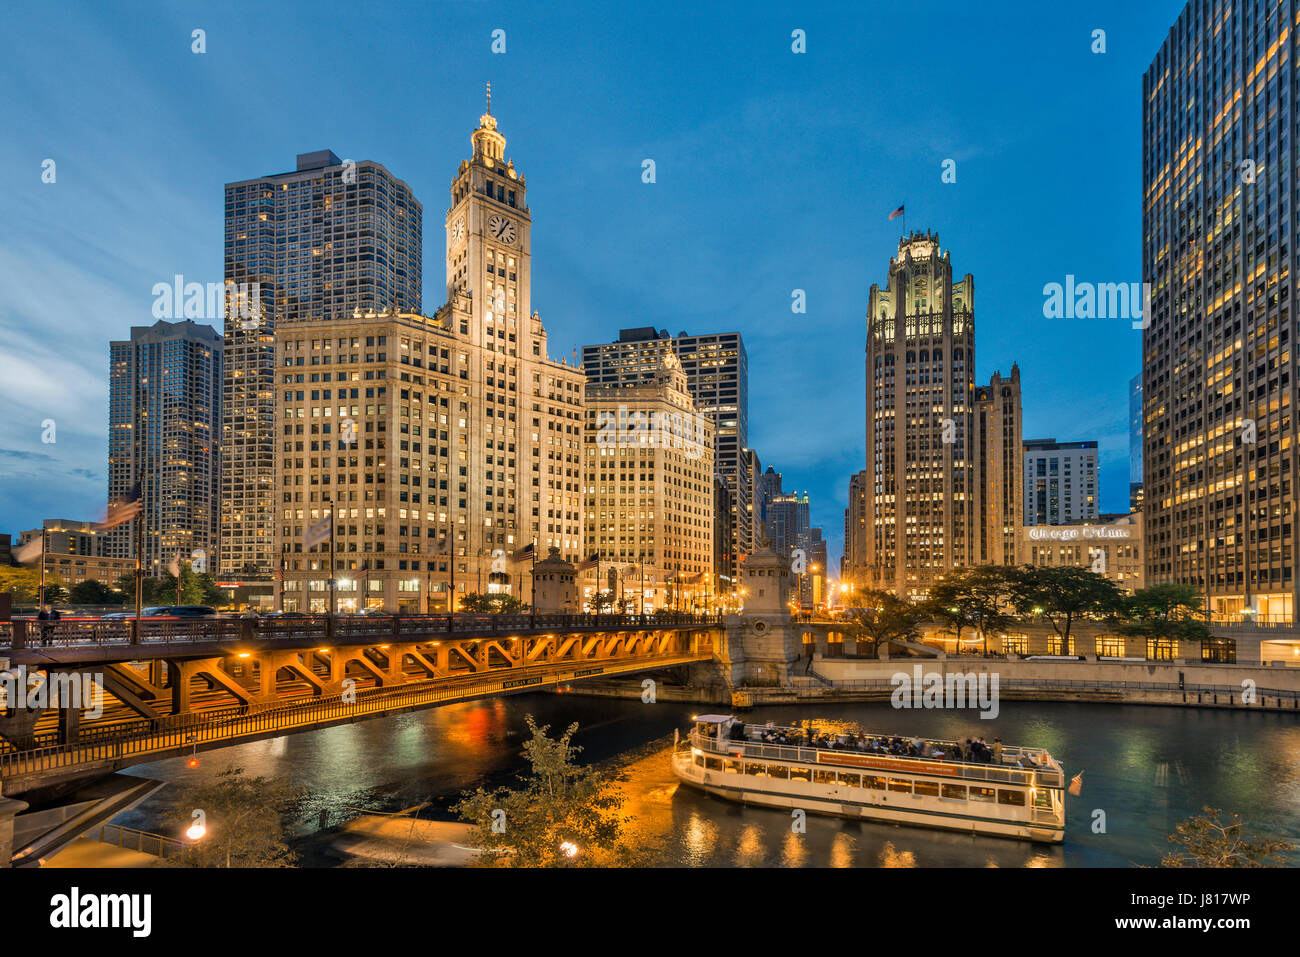 Evening picture of Chicago riverwalk with views of Chicago river, passing boats and already illuminated buildings - Stock Image